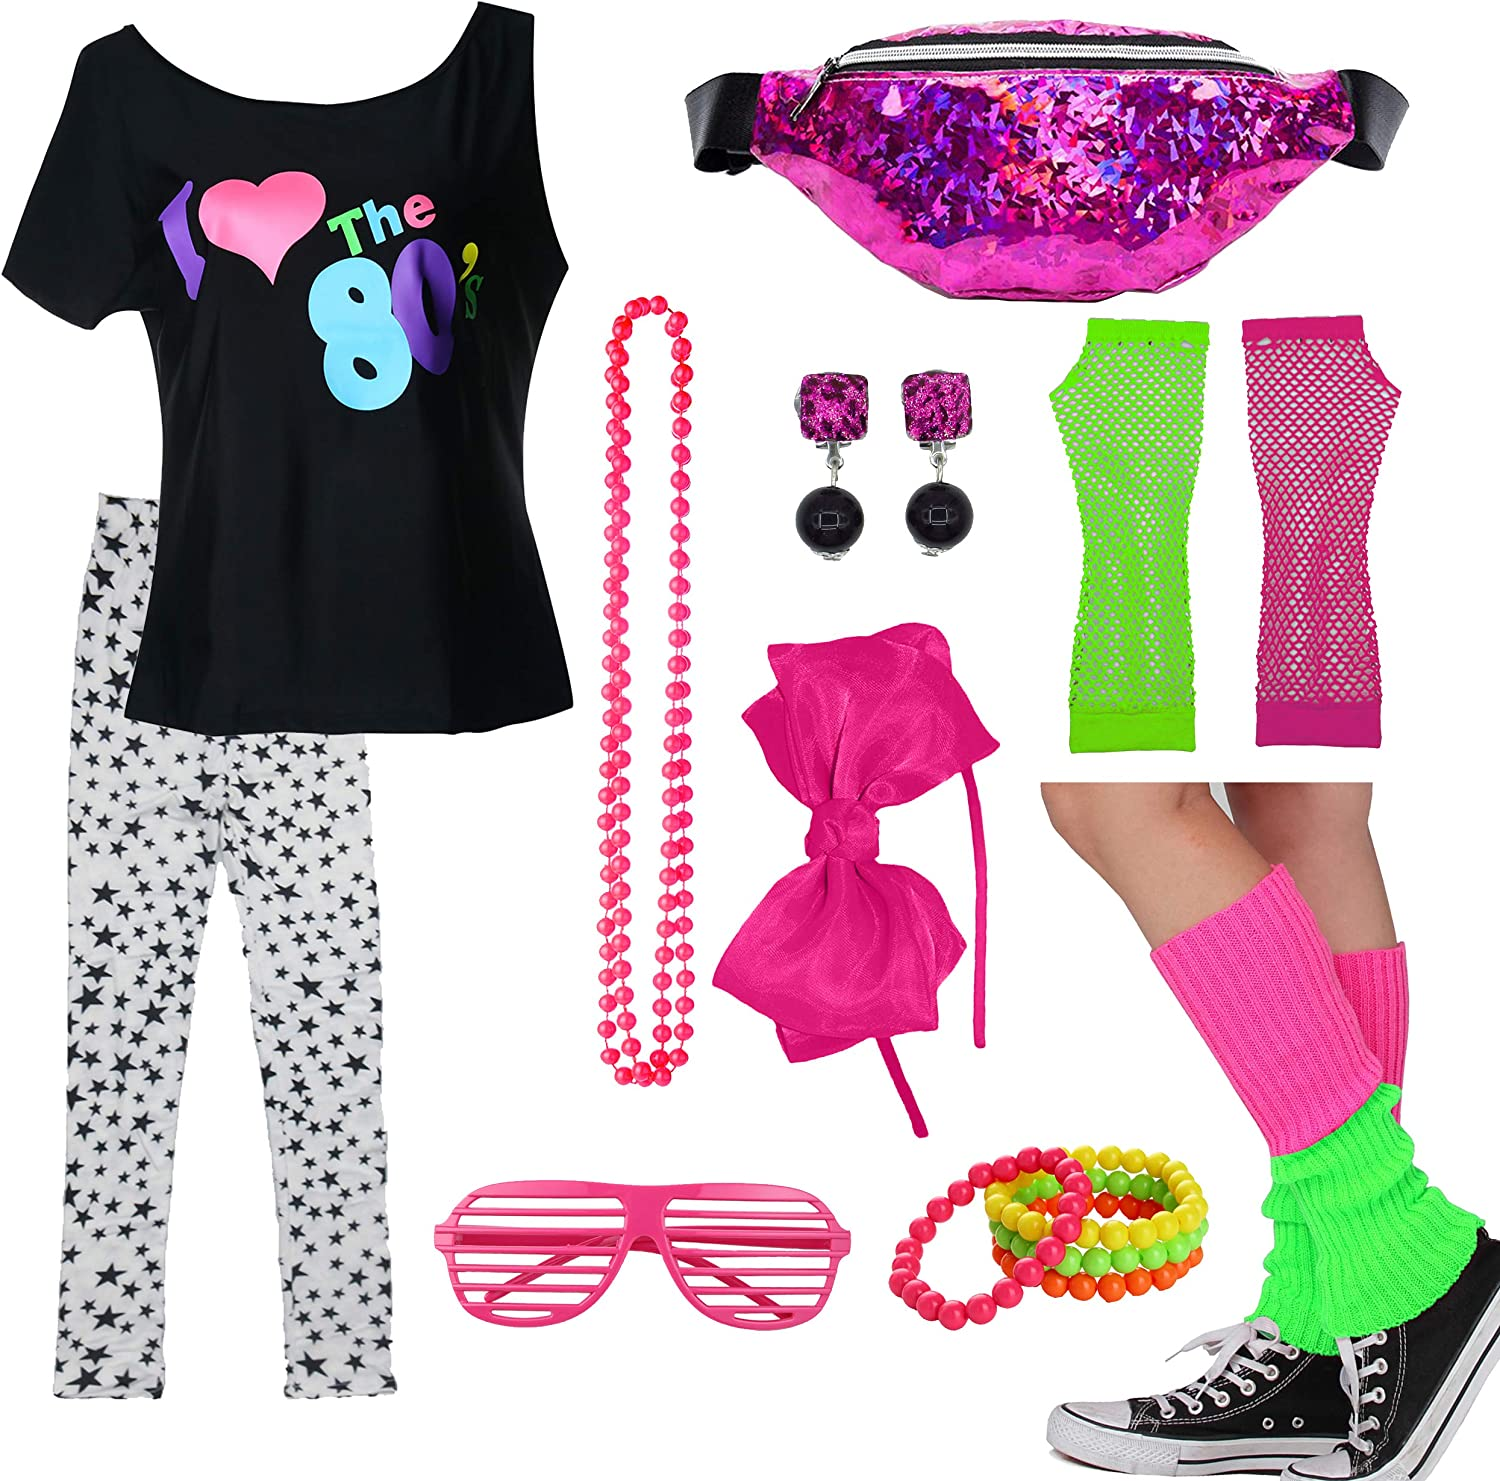 Kids Limited price sale 1980s supreme Accessories I Love The with Fanny Outfit 80's T-Shirt